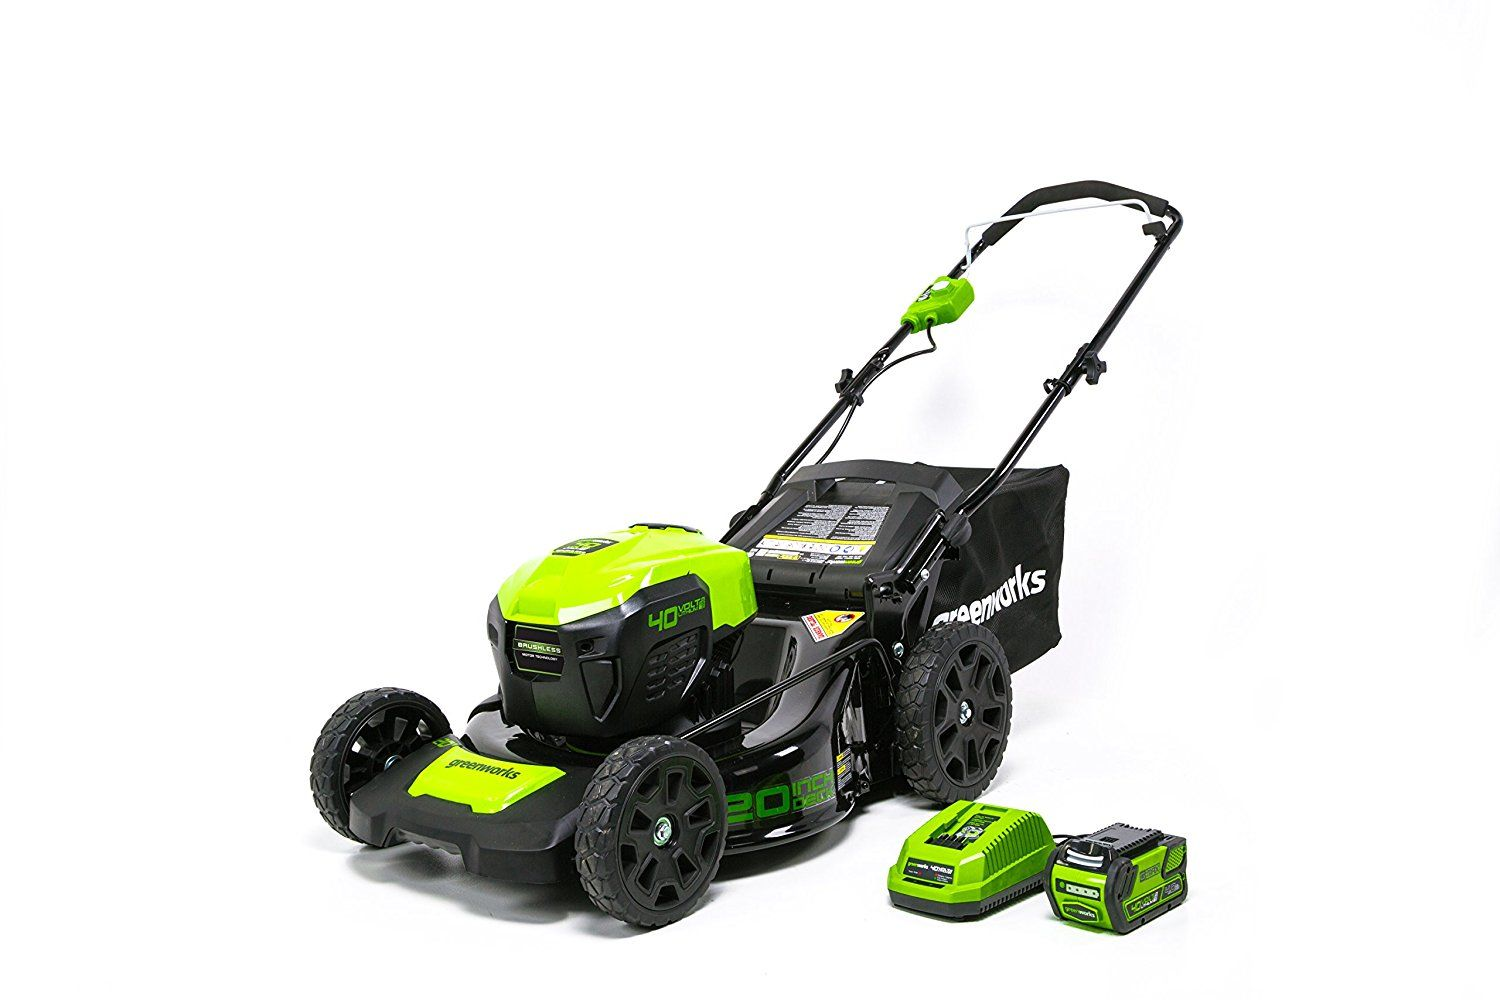 Best Cordless Lawn Mower 2021 Best Push Lawn Mower 2021   Buyer's Guide | Cordless lawn mower